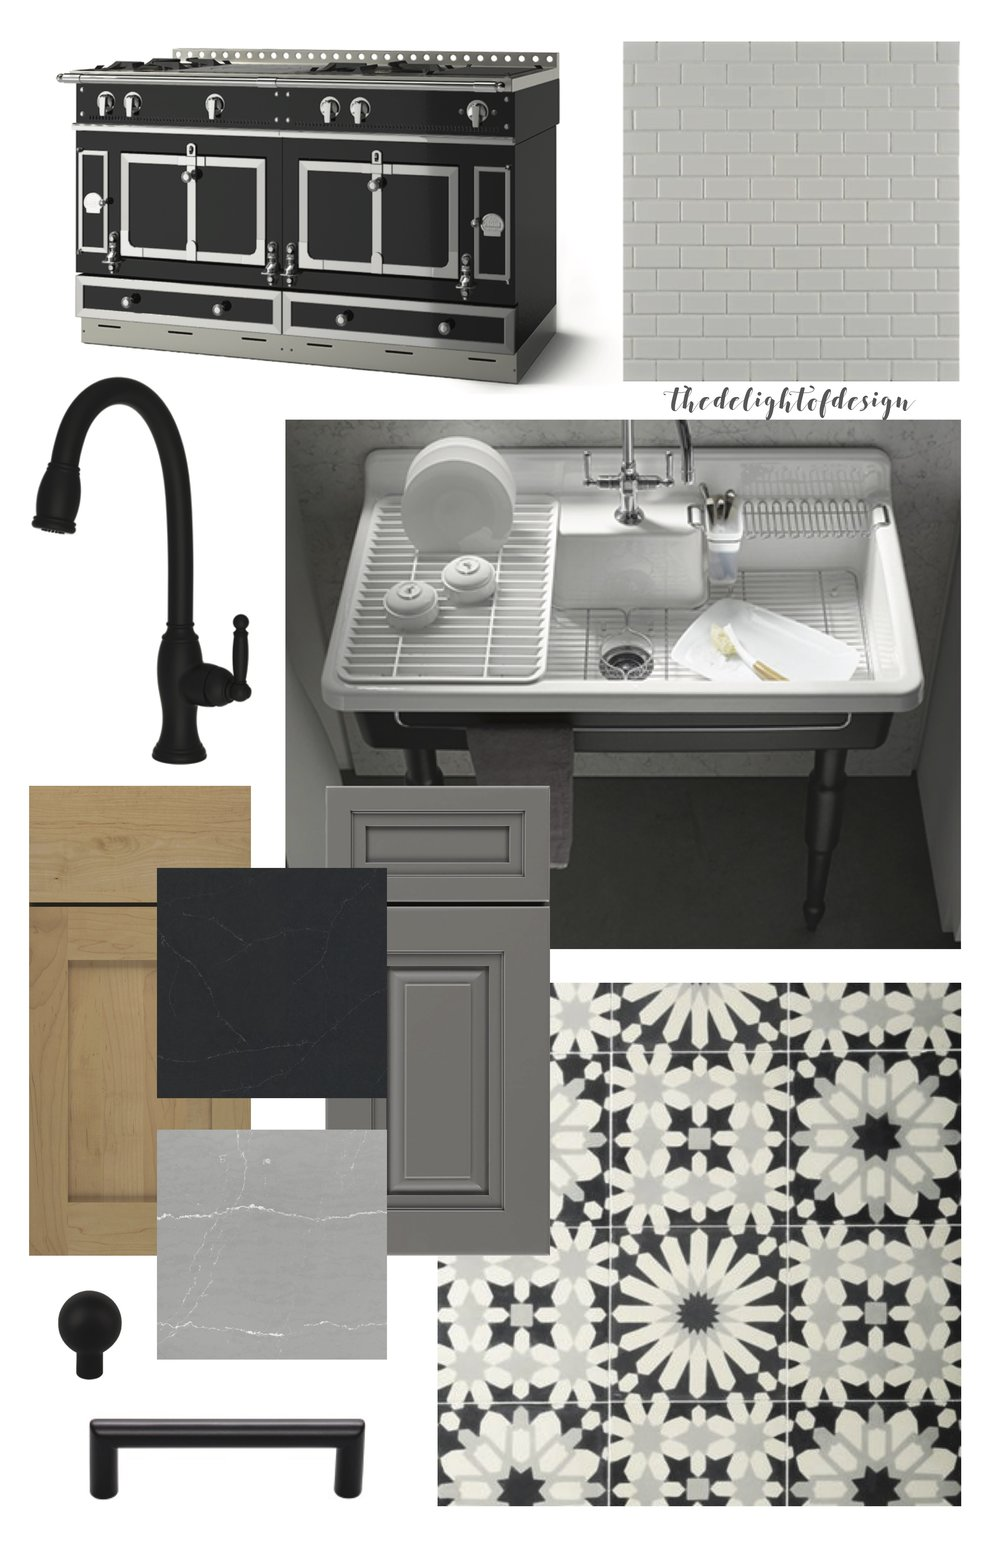 kitchenconcept.jpg